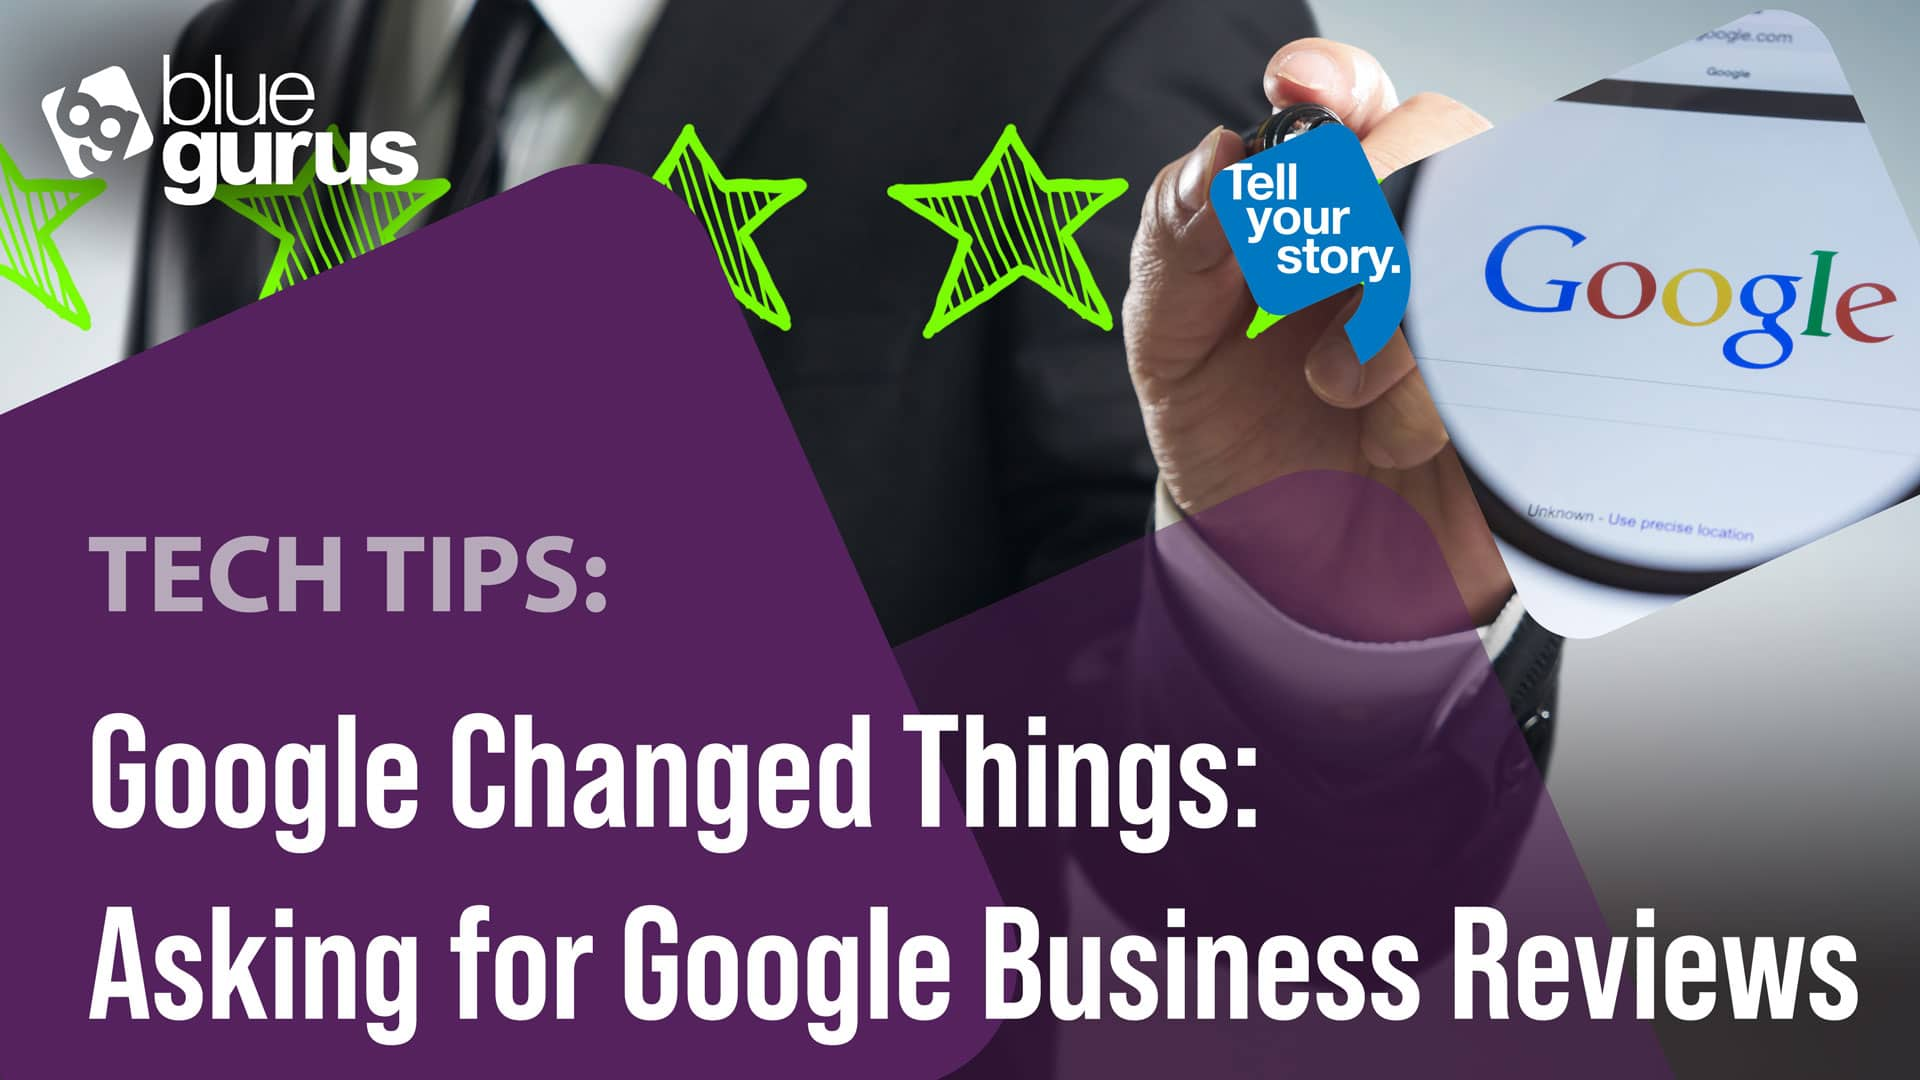 Asking for Google Business Reviews